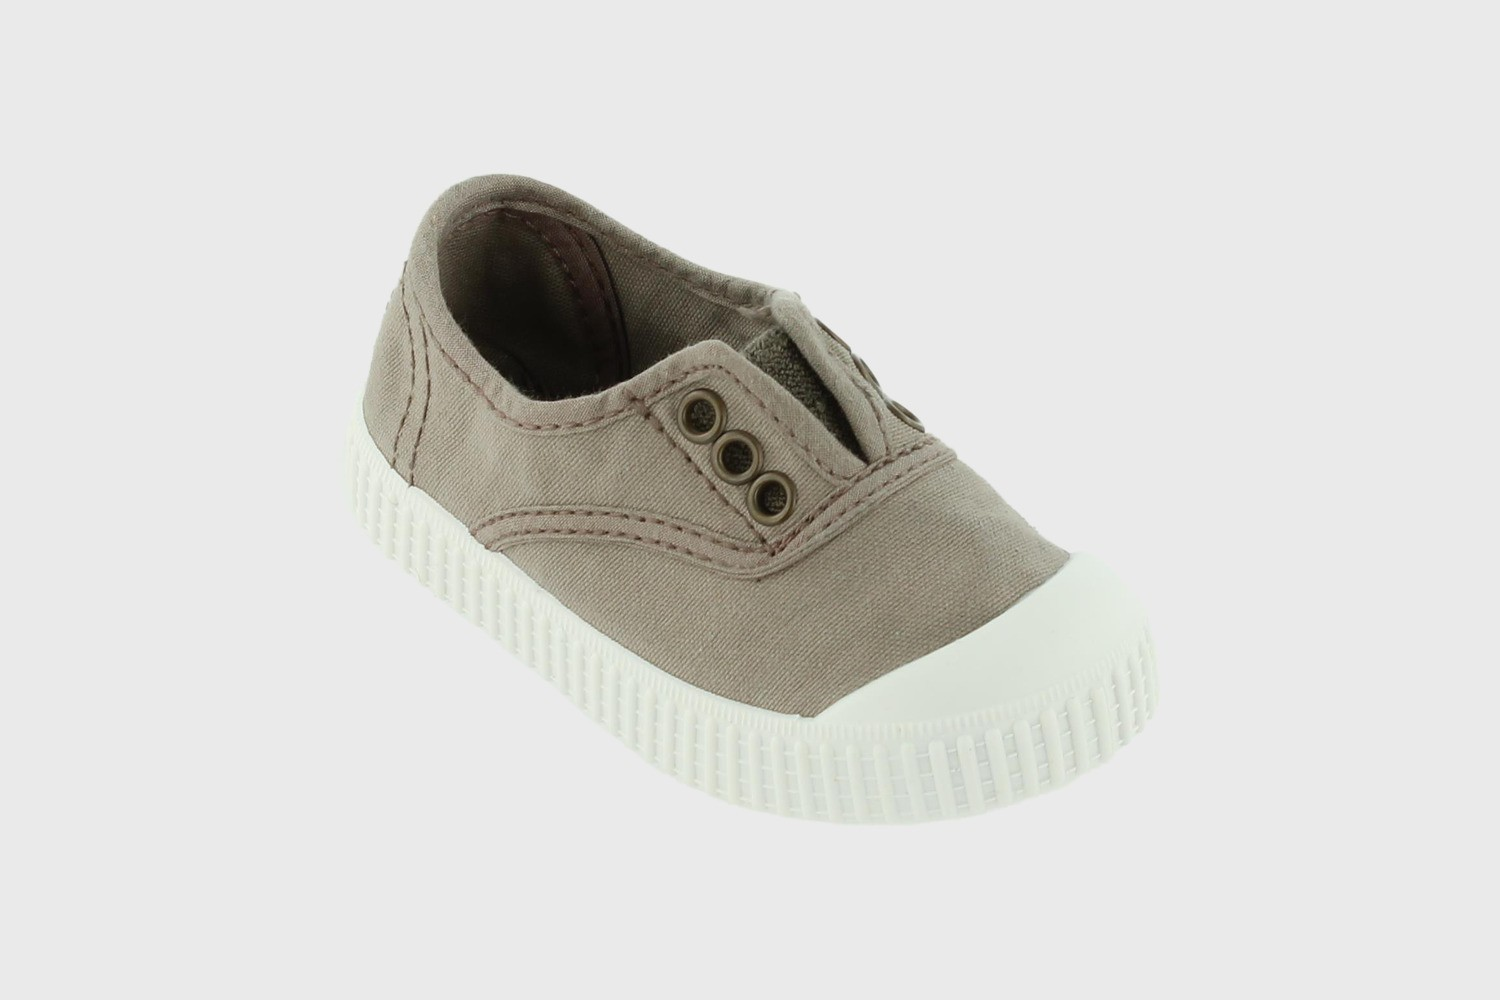 Victoria Shoes Slip On, Modell 06627, Farge: Nude - Barn